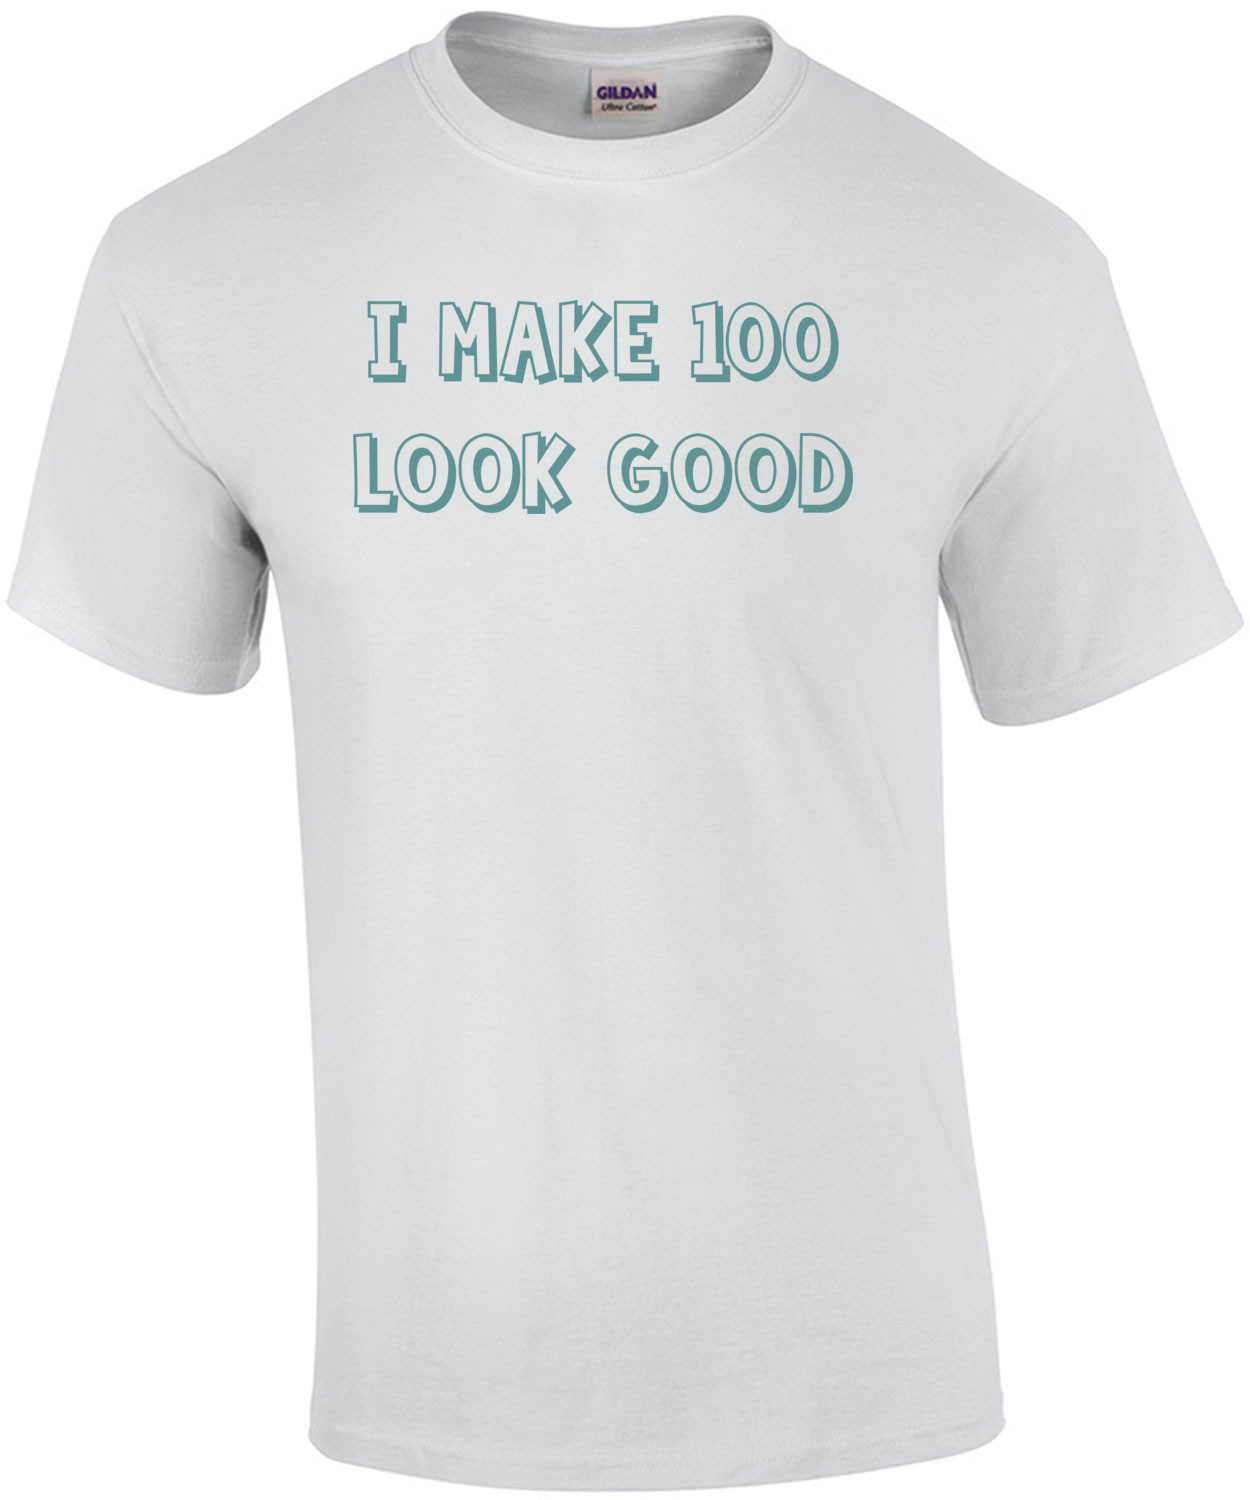 I make 100 look good - hundred 100 birthday t-shirt